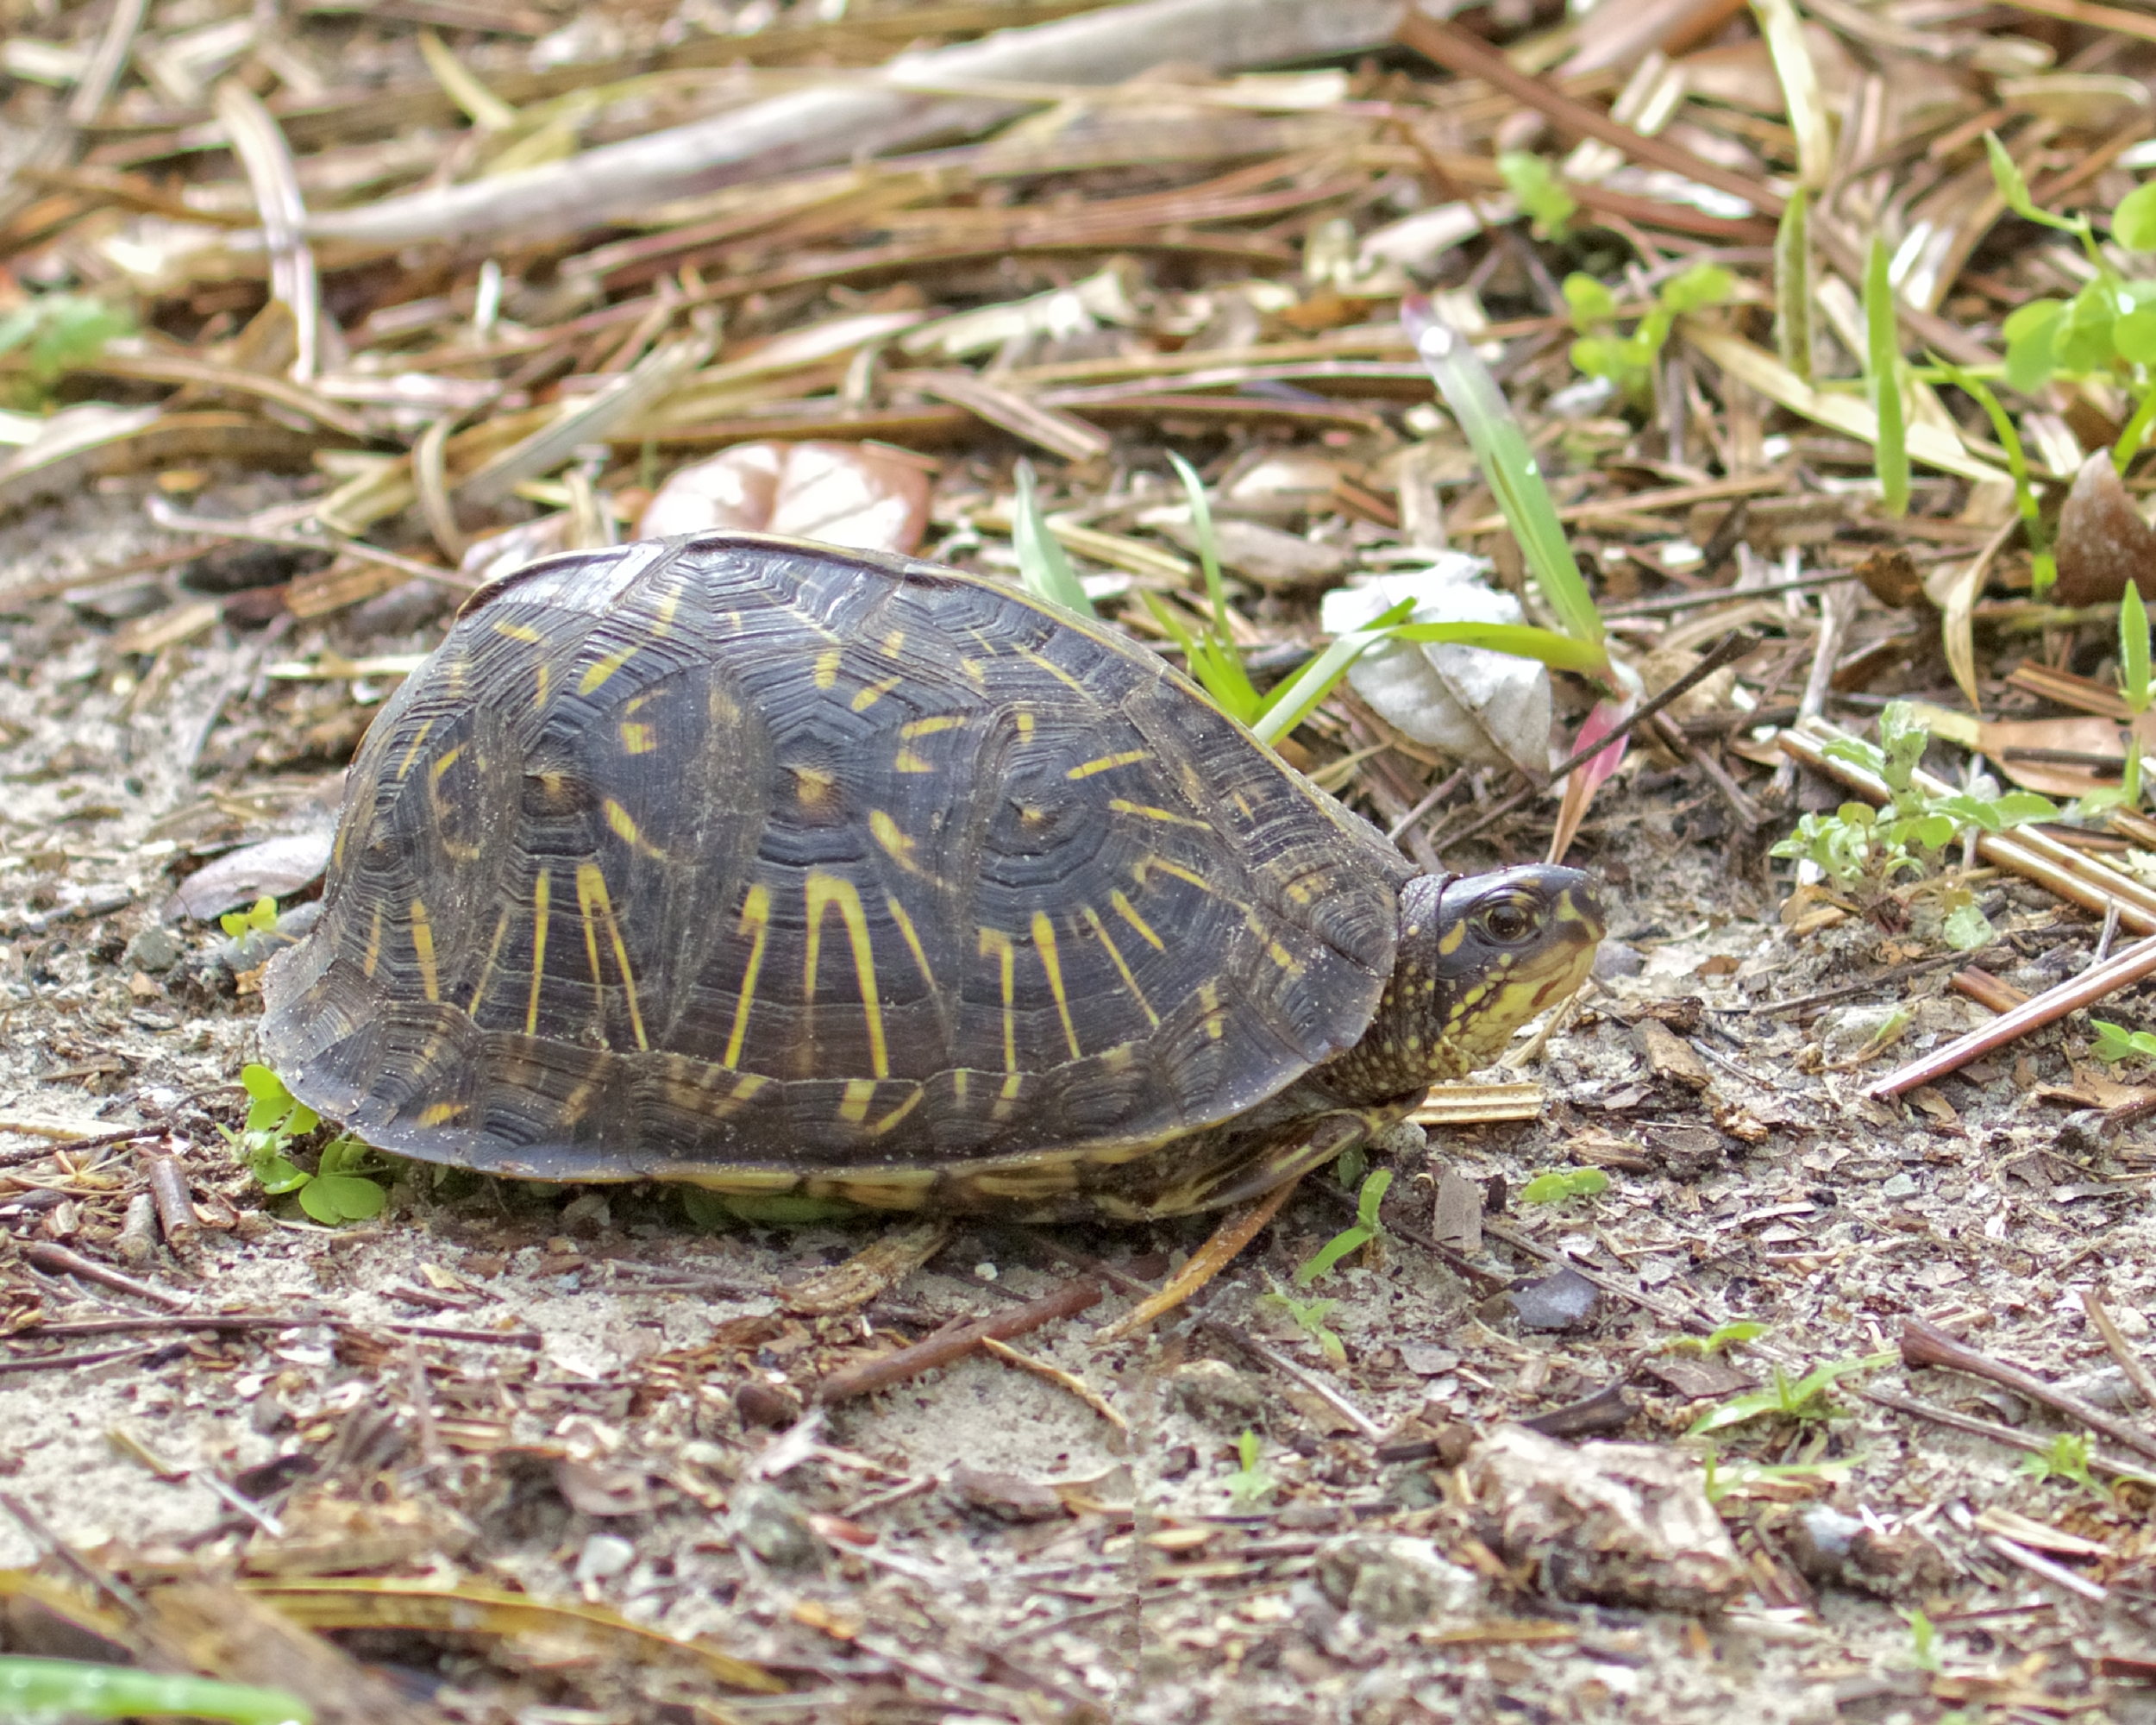 Has the tax man left yet said the box turtle?